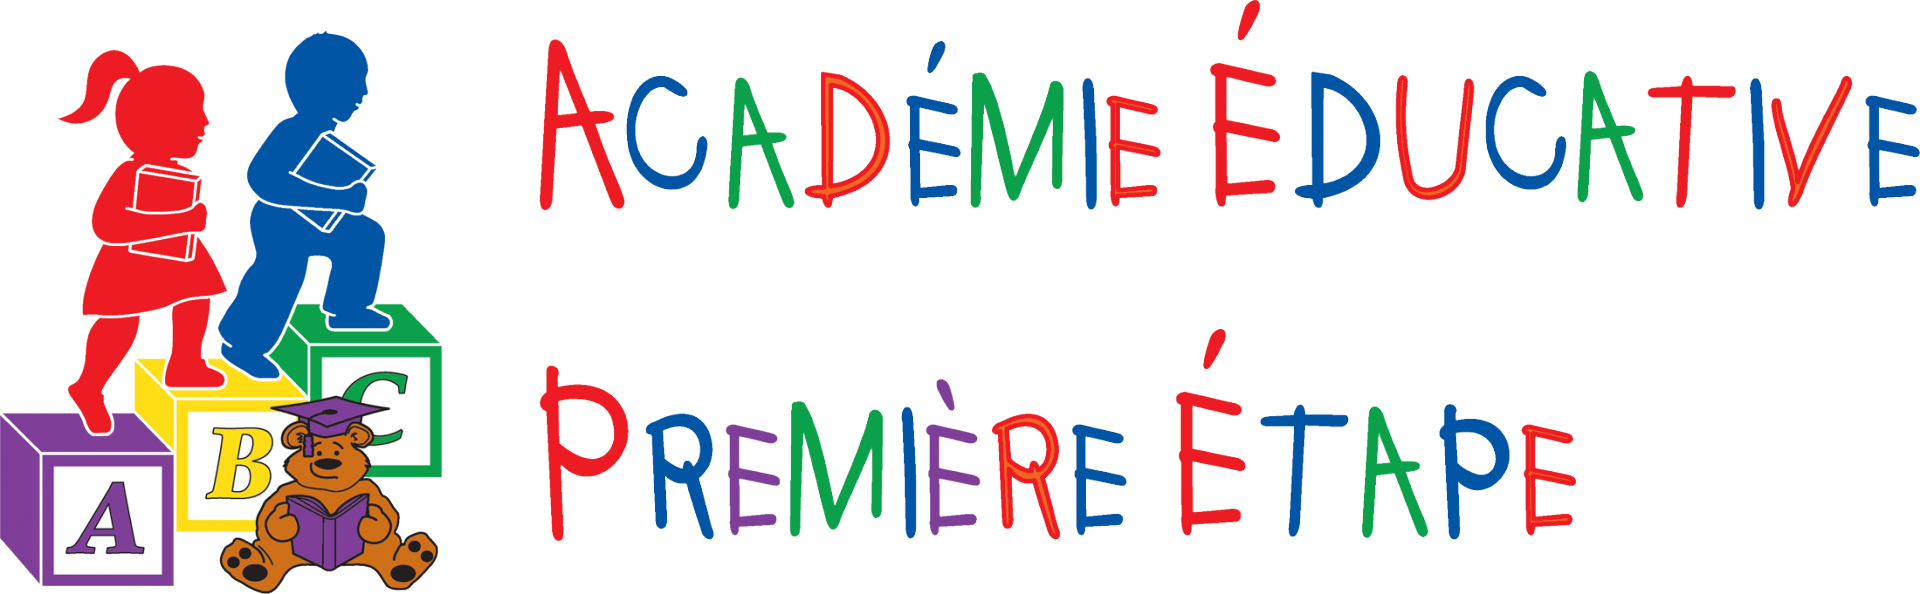 ACADEMIE EDUCATIVE PREMIERE ETAPE INC